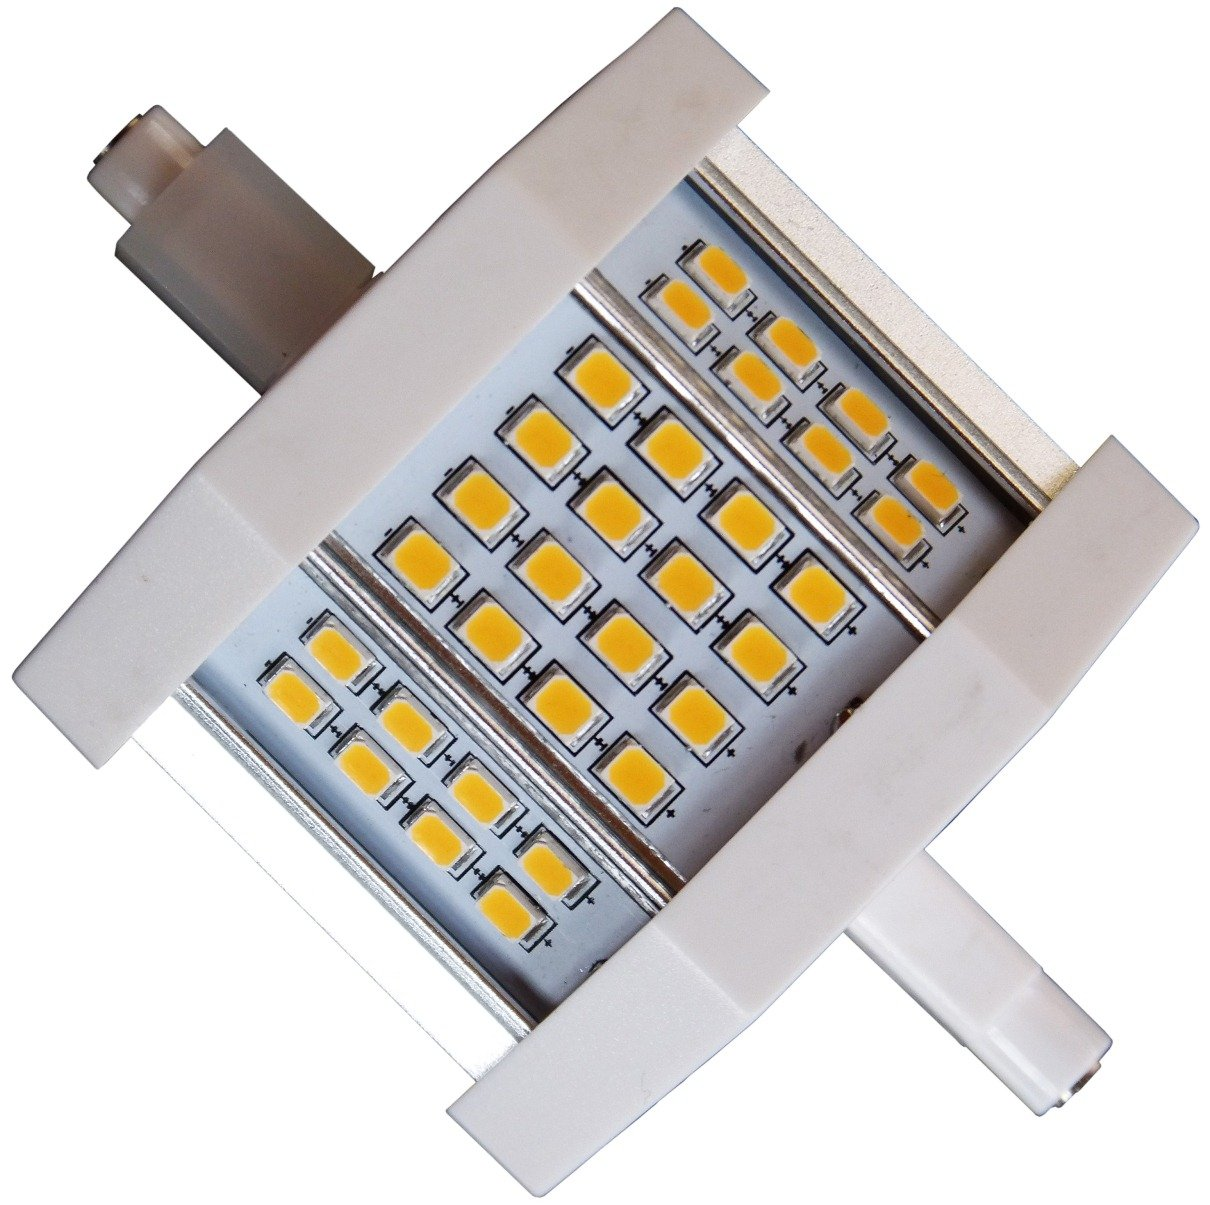 8w led lampe brenner 780 lumen dimmbar r7s 78 j78 leuchtmittel 8w led lampe brenner 780 lumen dimmbar r7s 78 j78 leuchtmittel 230v 78mm warm wei 8 watt amazon beleuchtung parisarafo Image collections